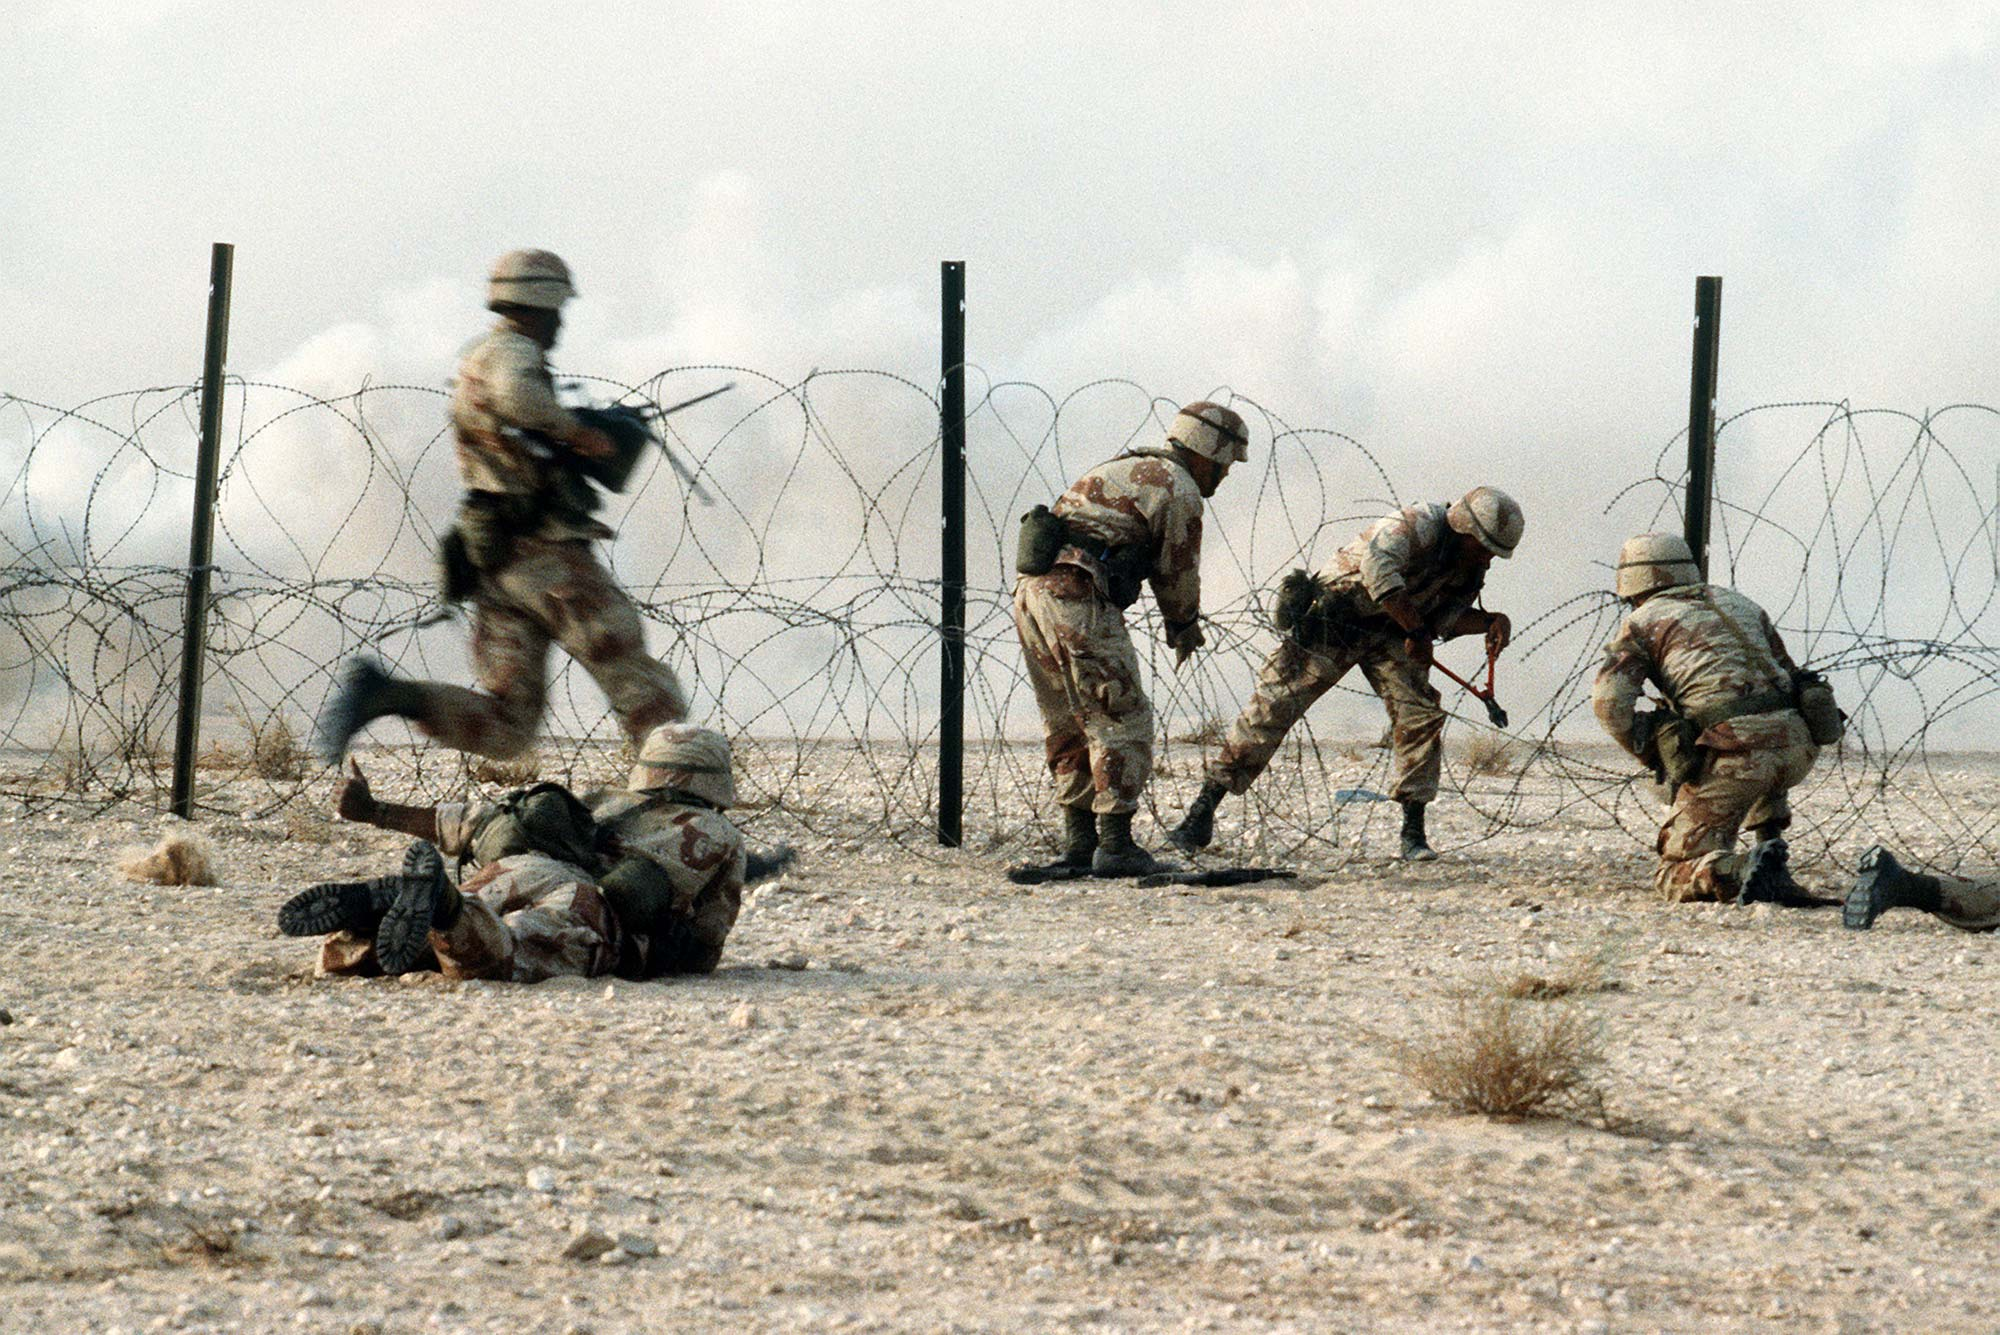 Members of the 1st Battalion, 325th Airborne Infantry Regiment, make their way through concertina wire during a live fire demonstration during Operation Desert Shield.